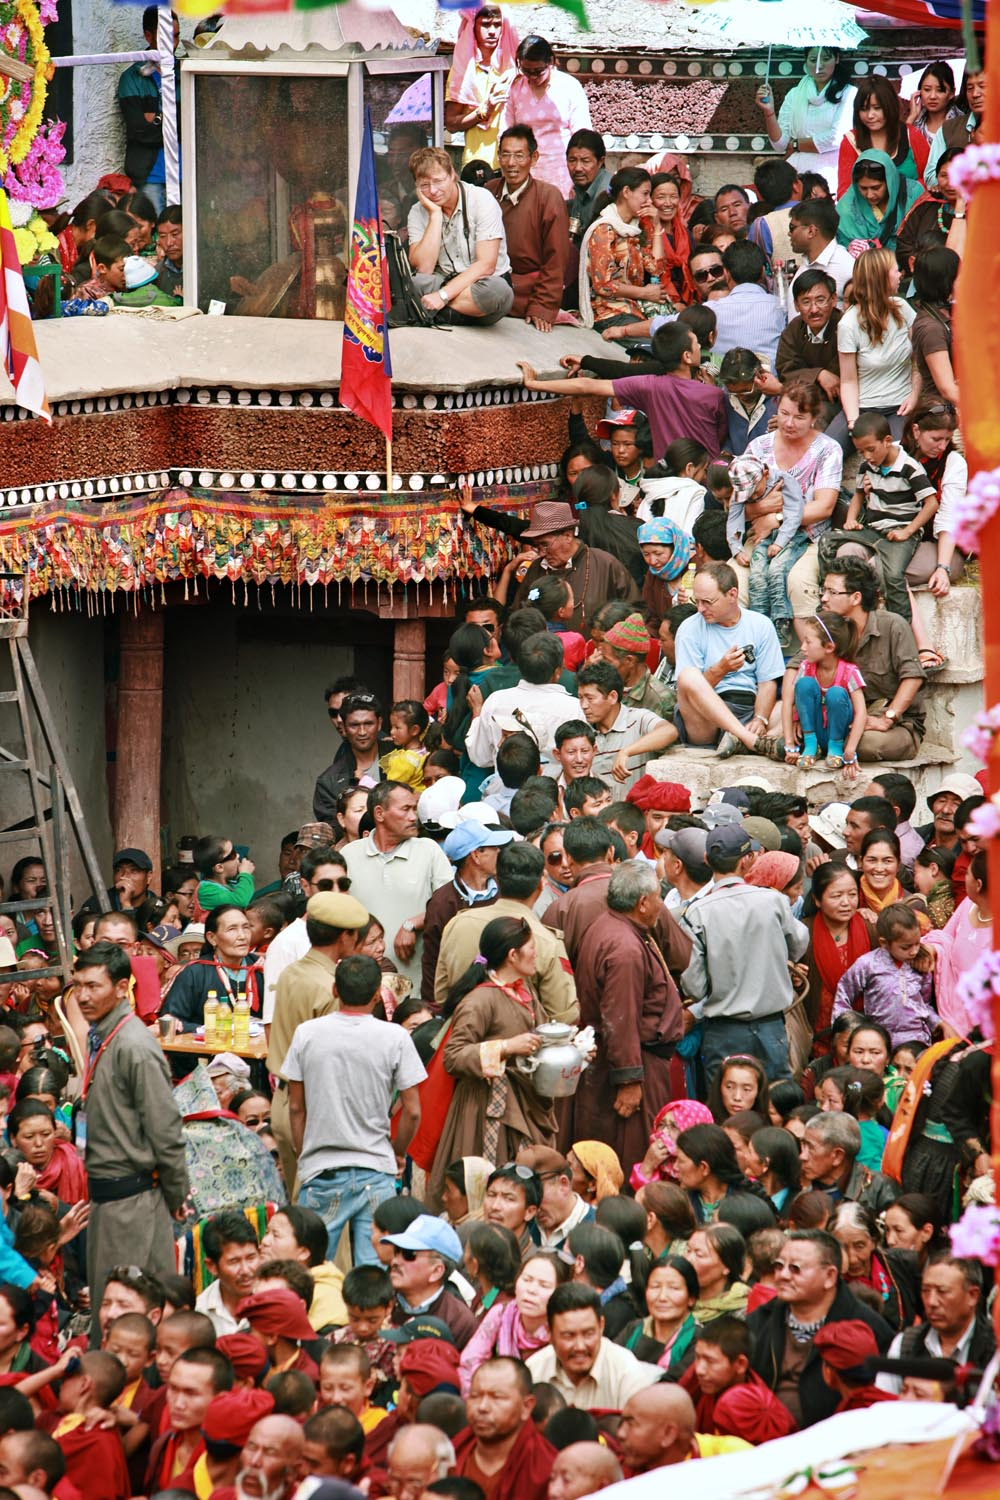 A packed audience, Hemis Monastery